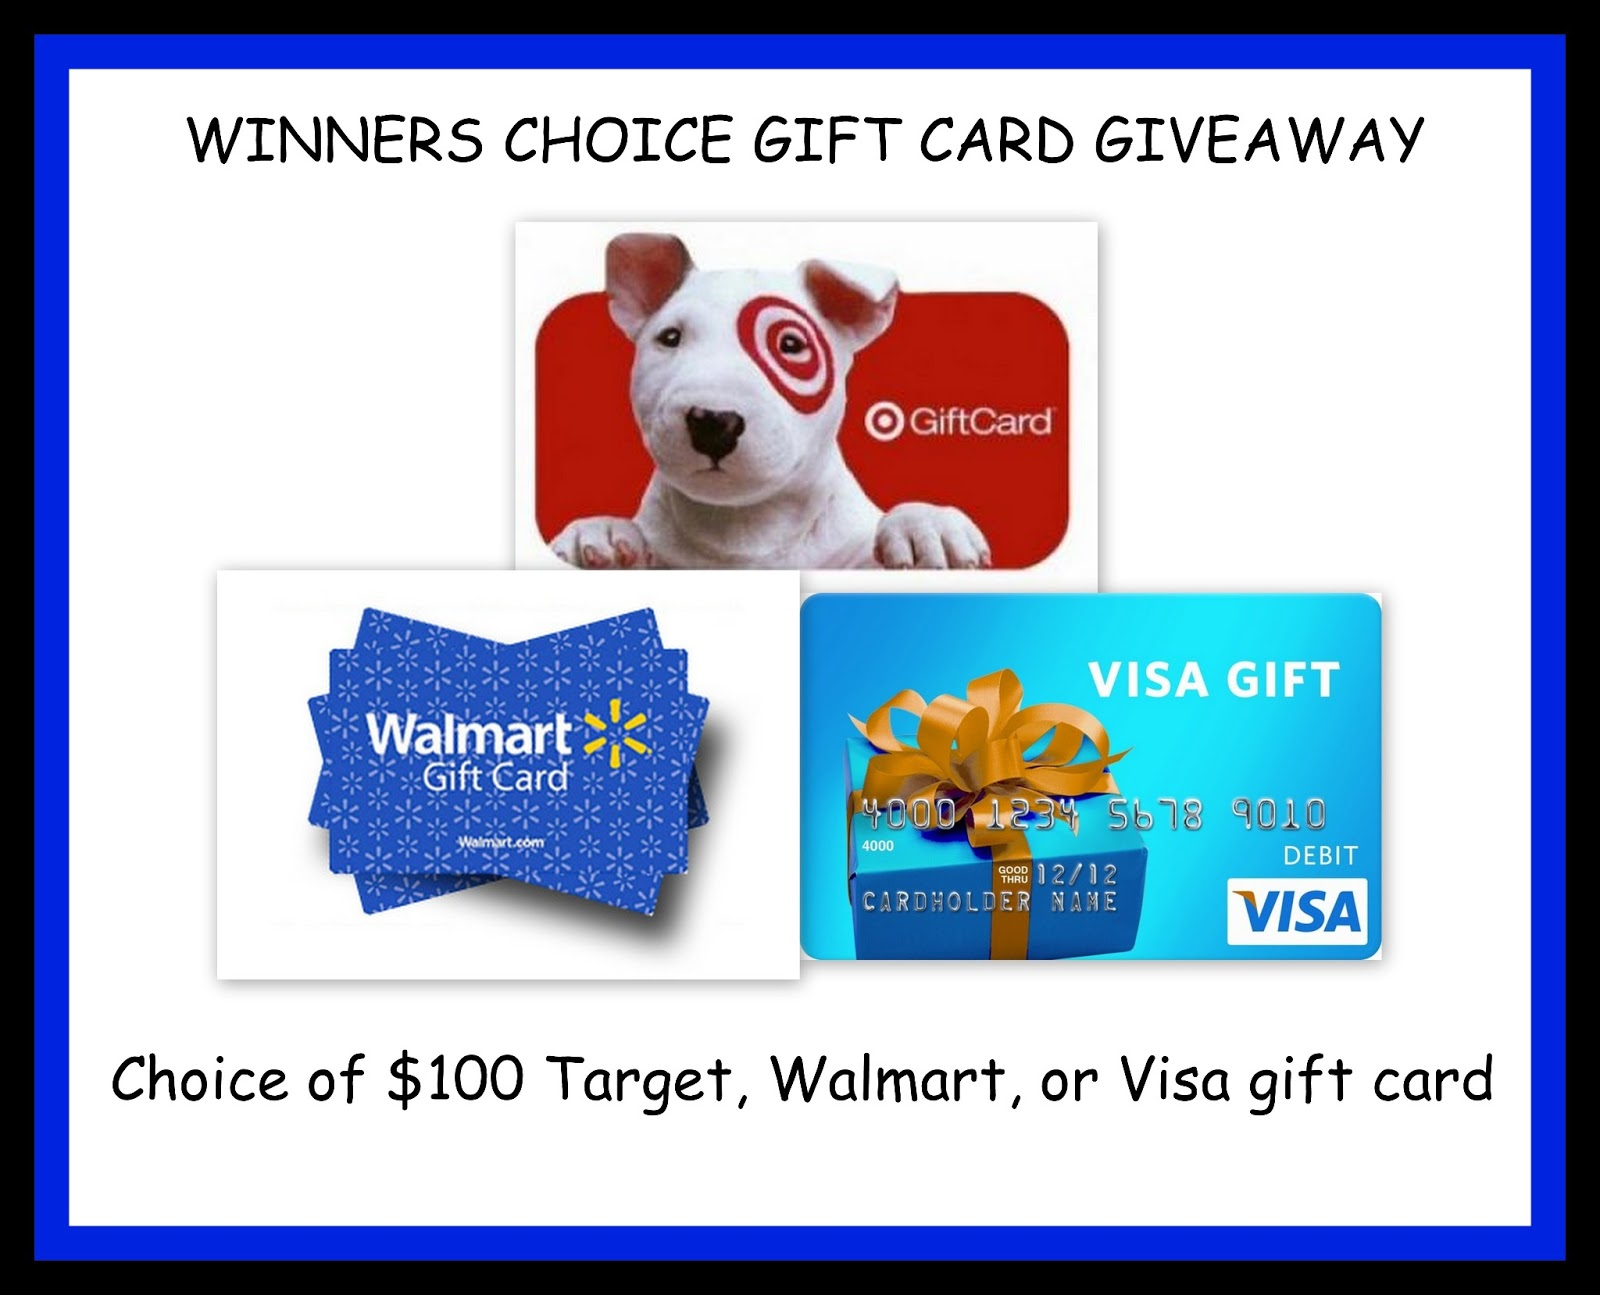 visa sweepstakes money money money who wants to win giveaway our 7737